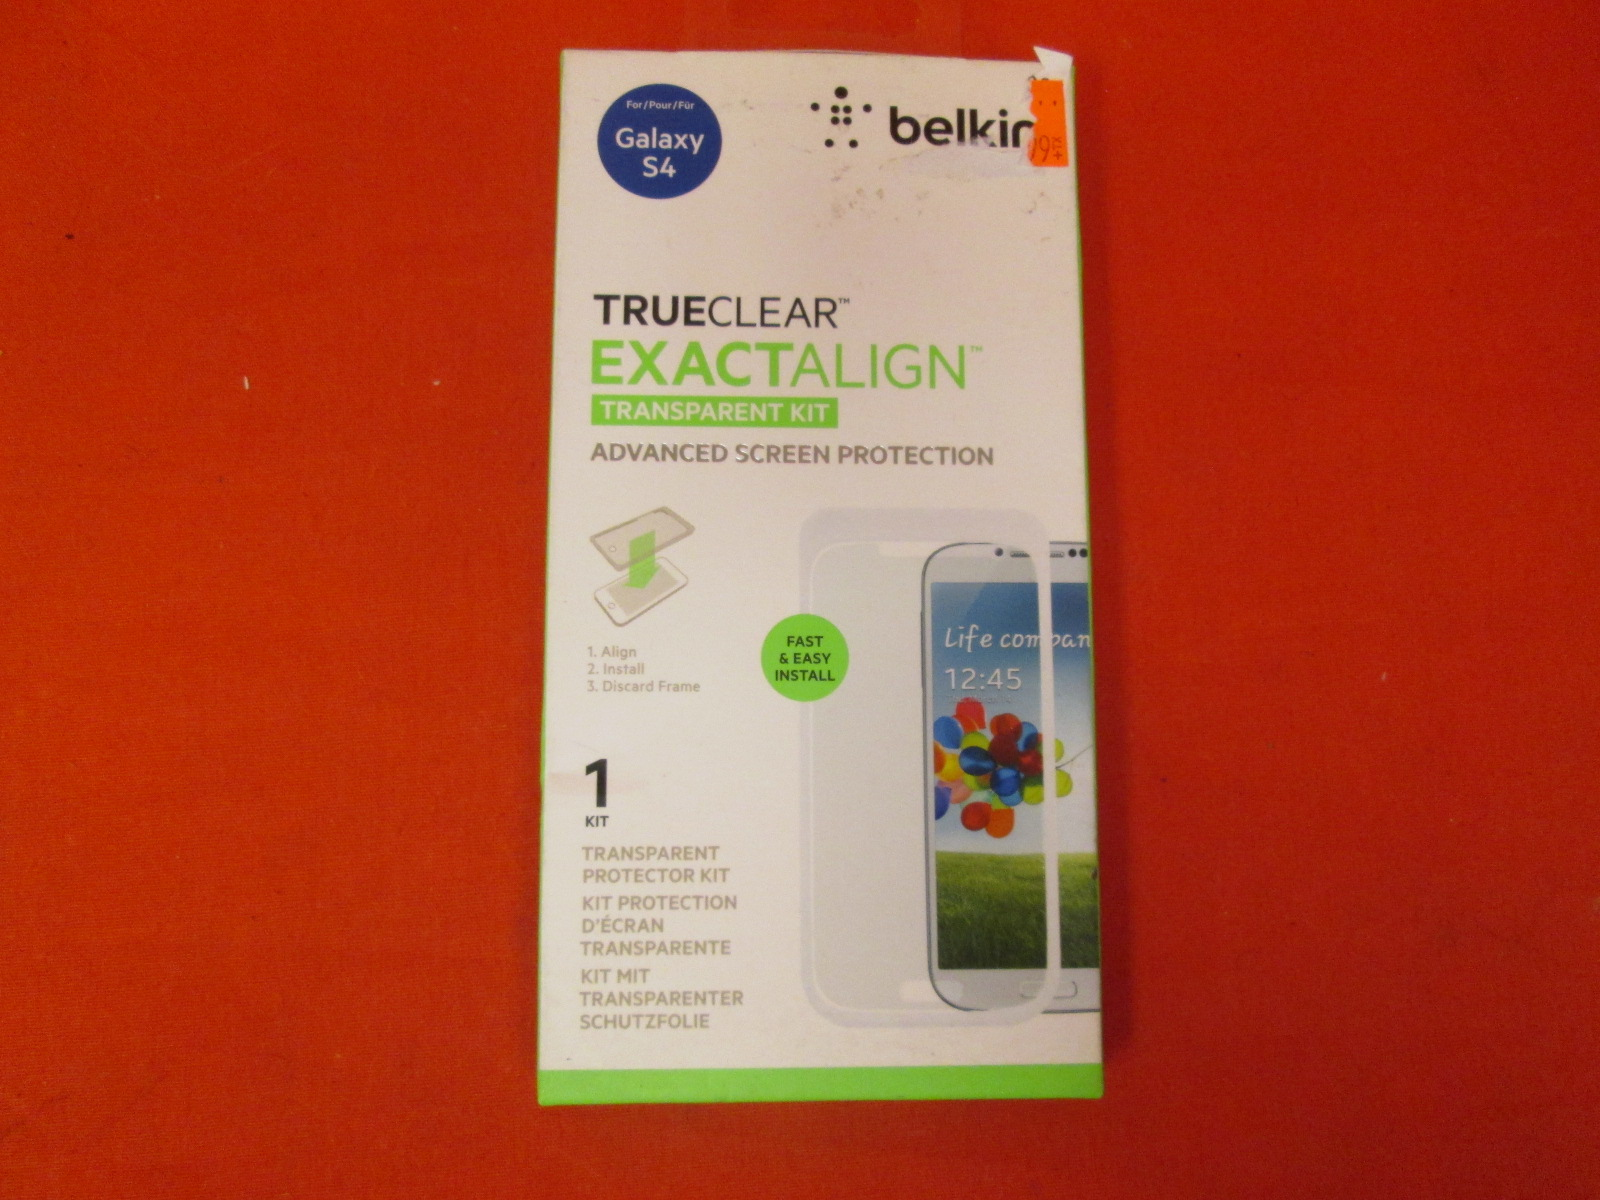 Belkin Trueclear Exactalign Transparent Kit Advanced Screen Protection